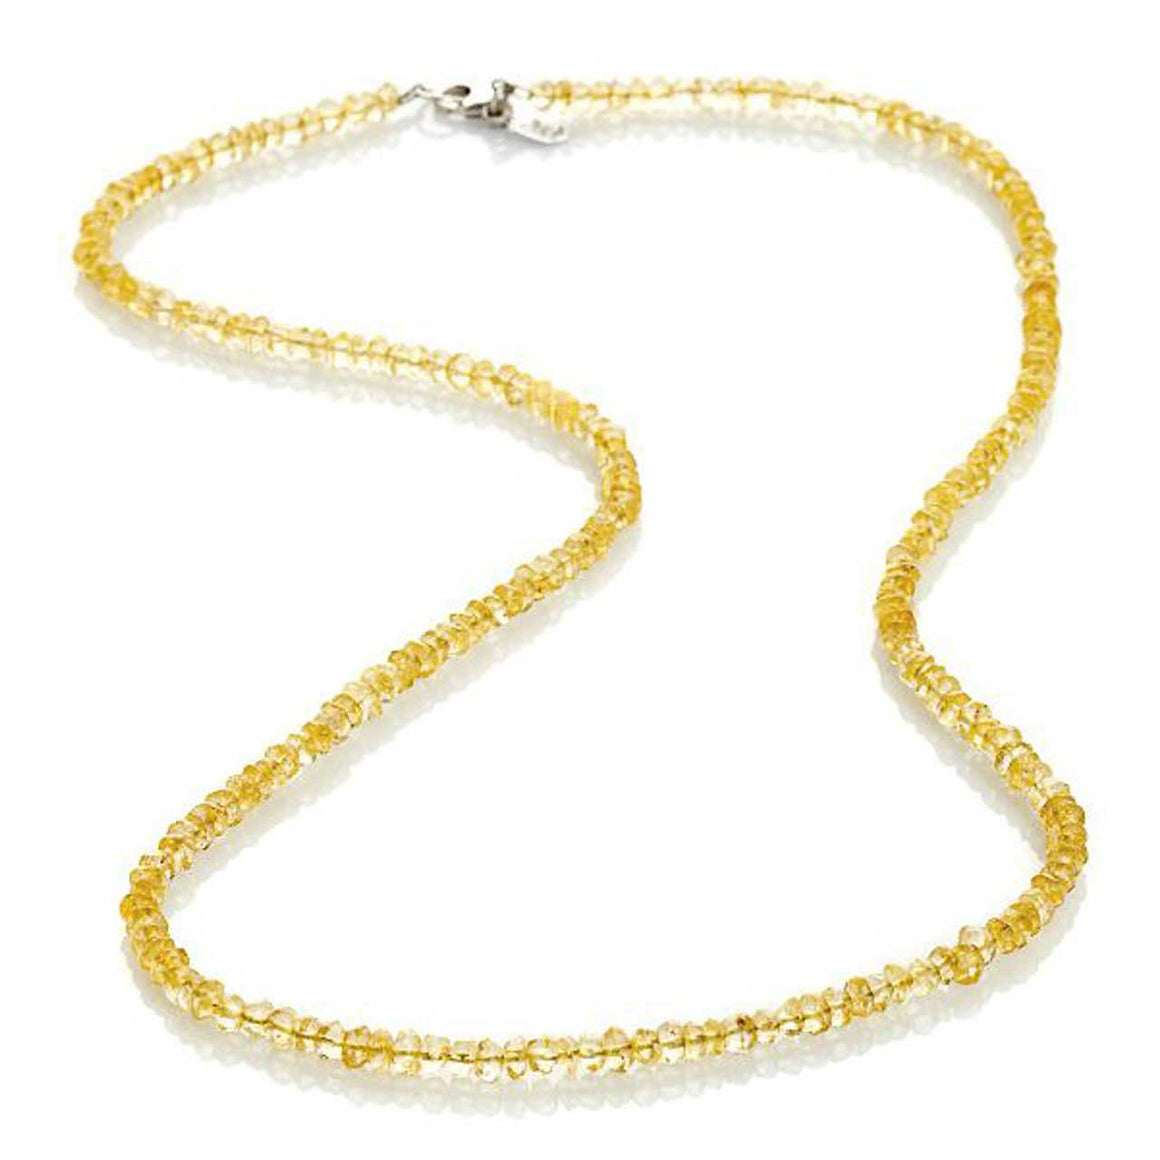 "Citrine 24"" Gemstone Bead Necklace"